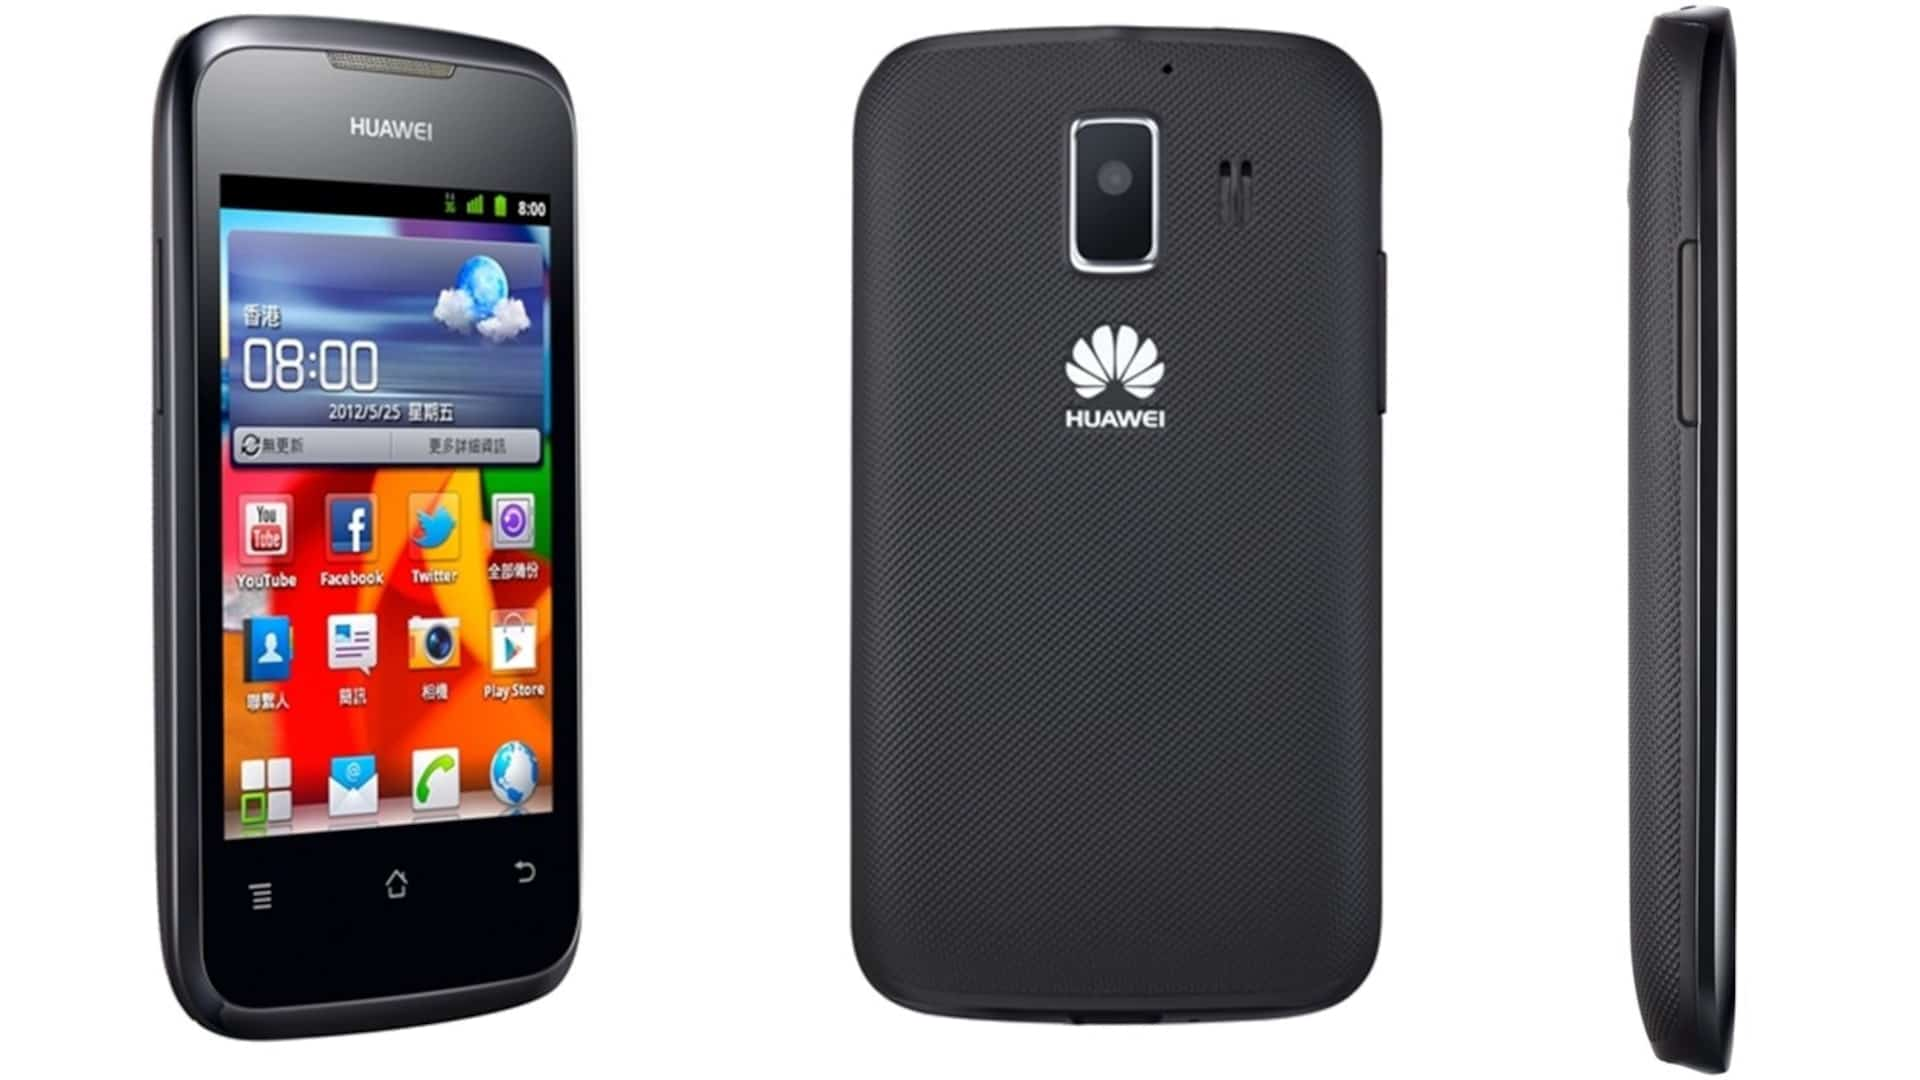 Huawei Ascend Y200 Review